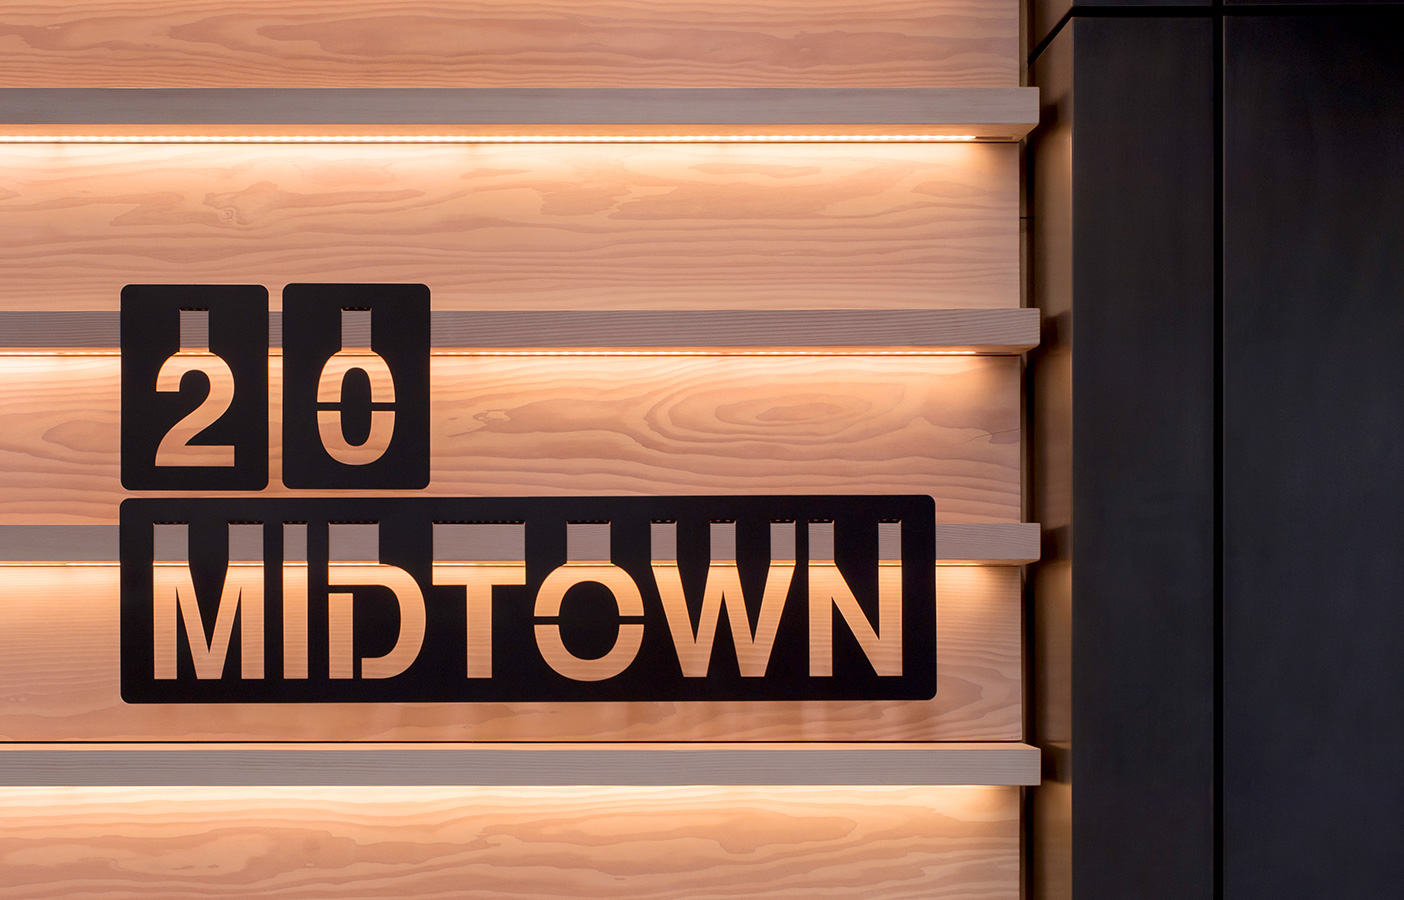 Aldworth James & Bond | 20 Midtown - signage